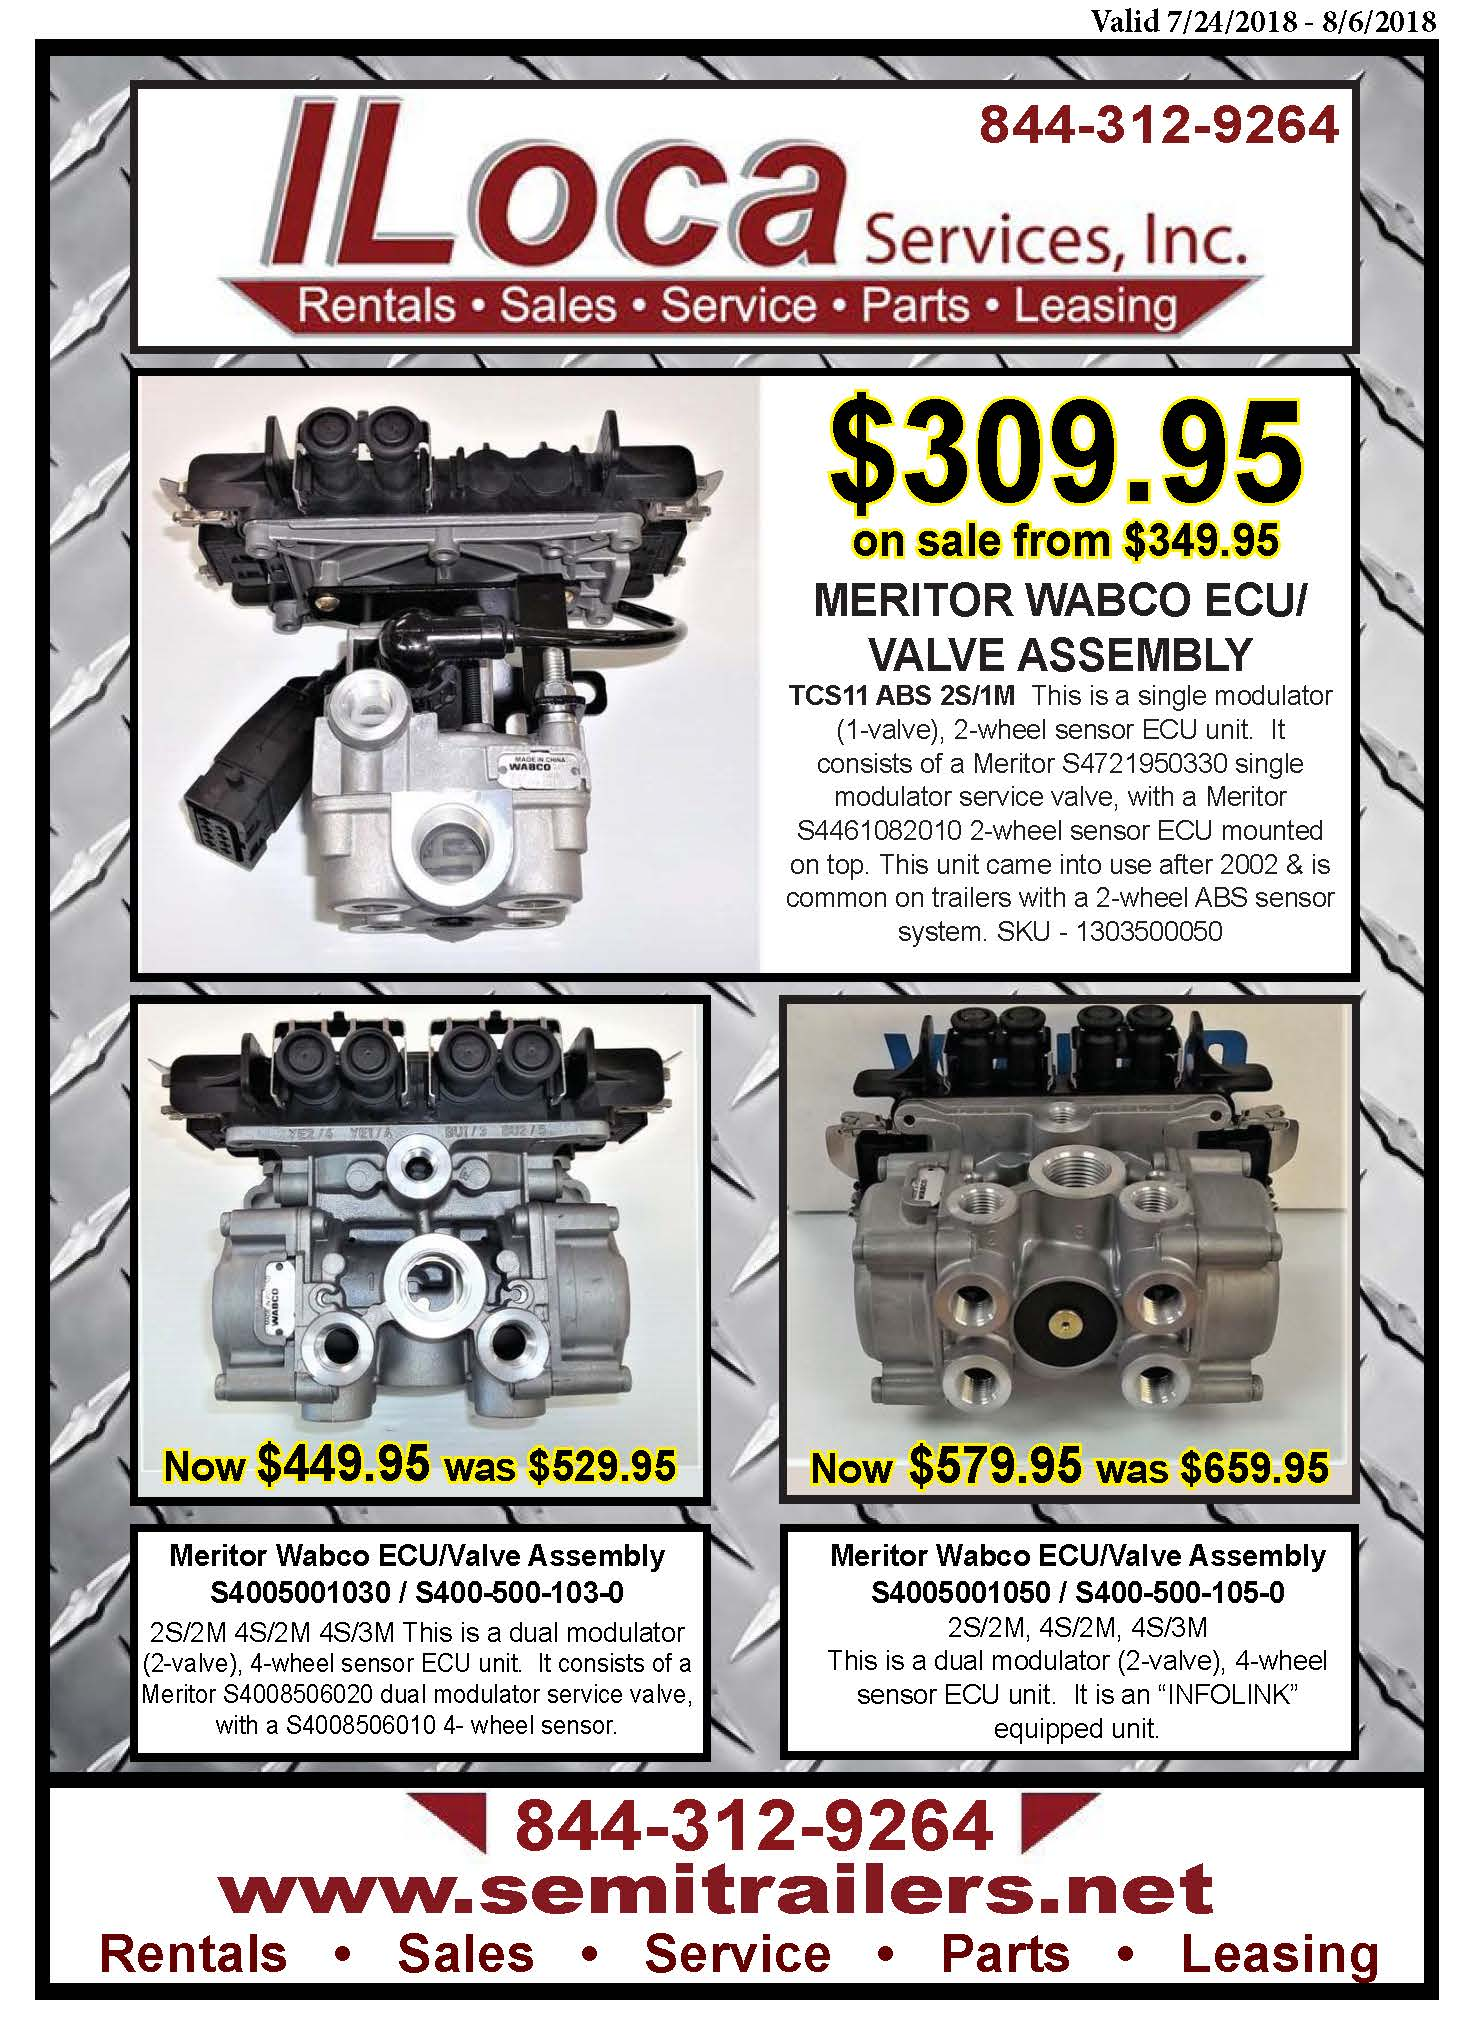 Meritor WABCO ECU/Valves Parts Flyer through August 6